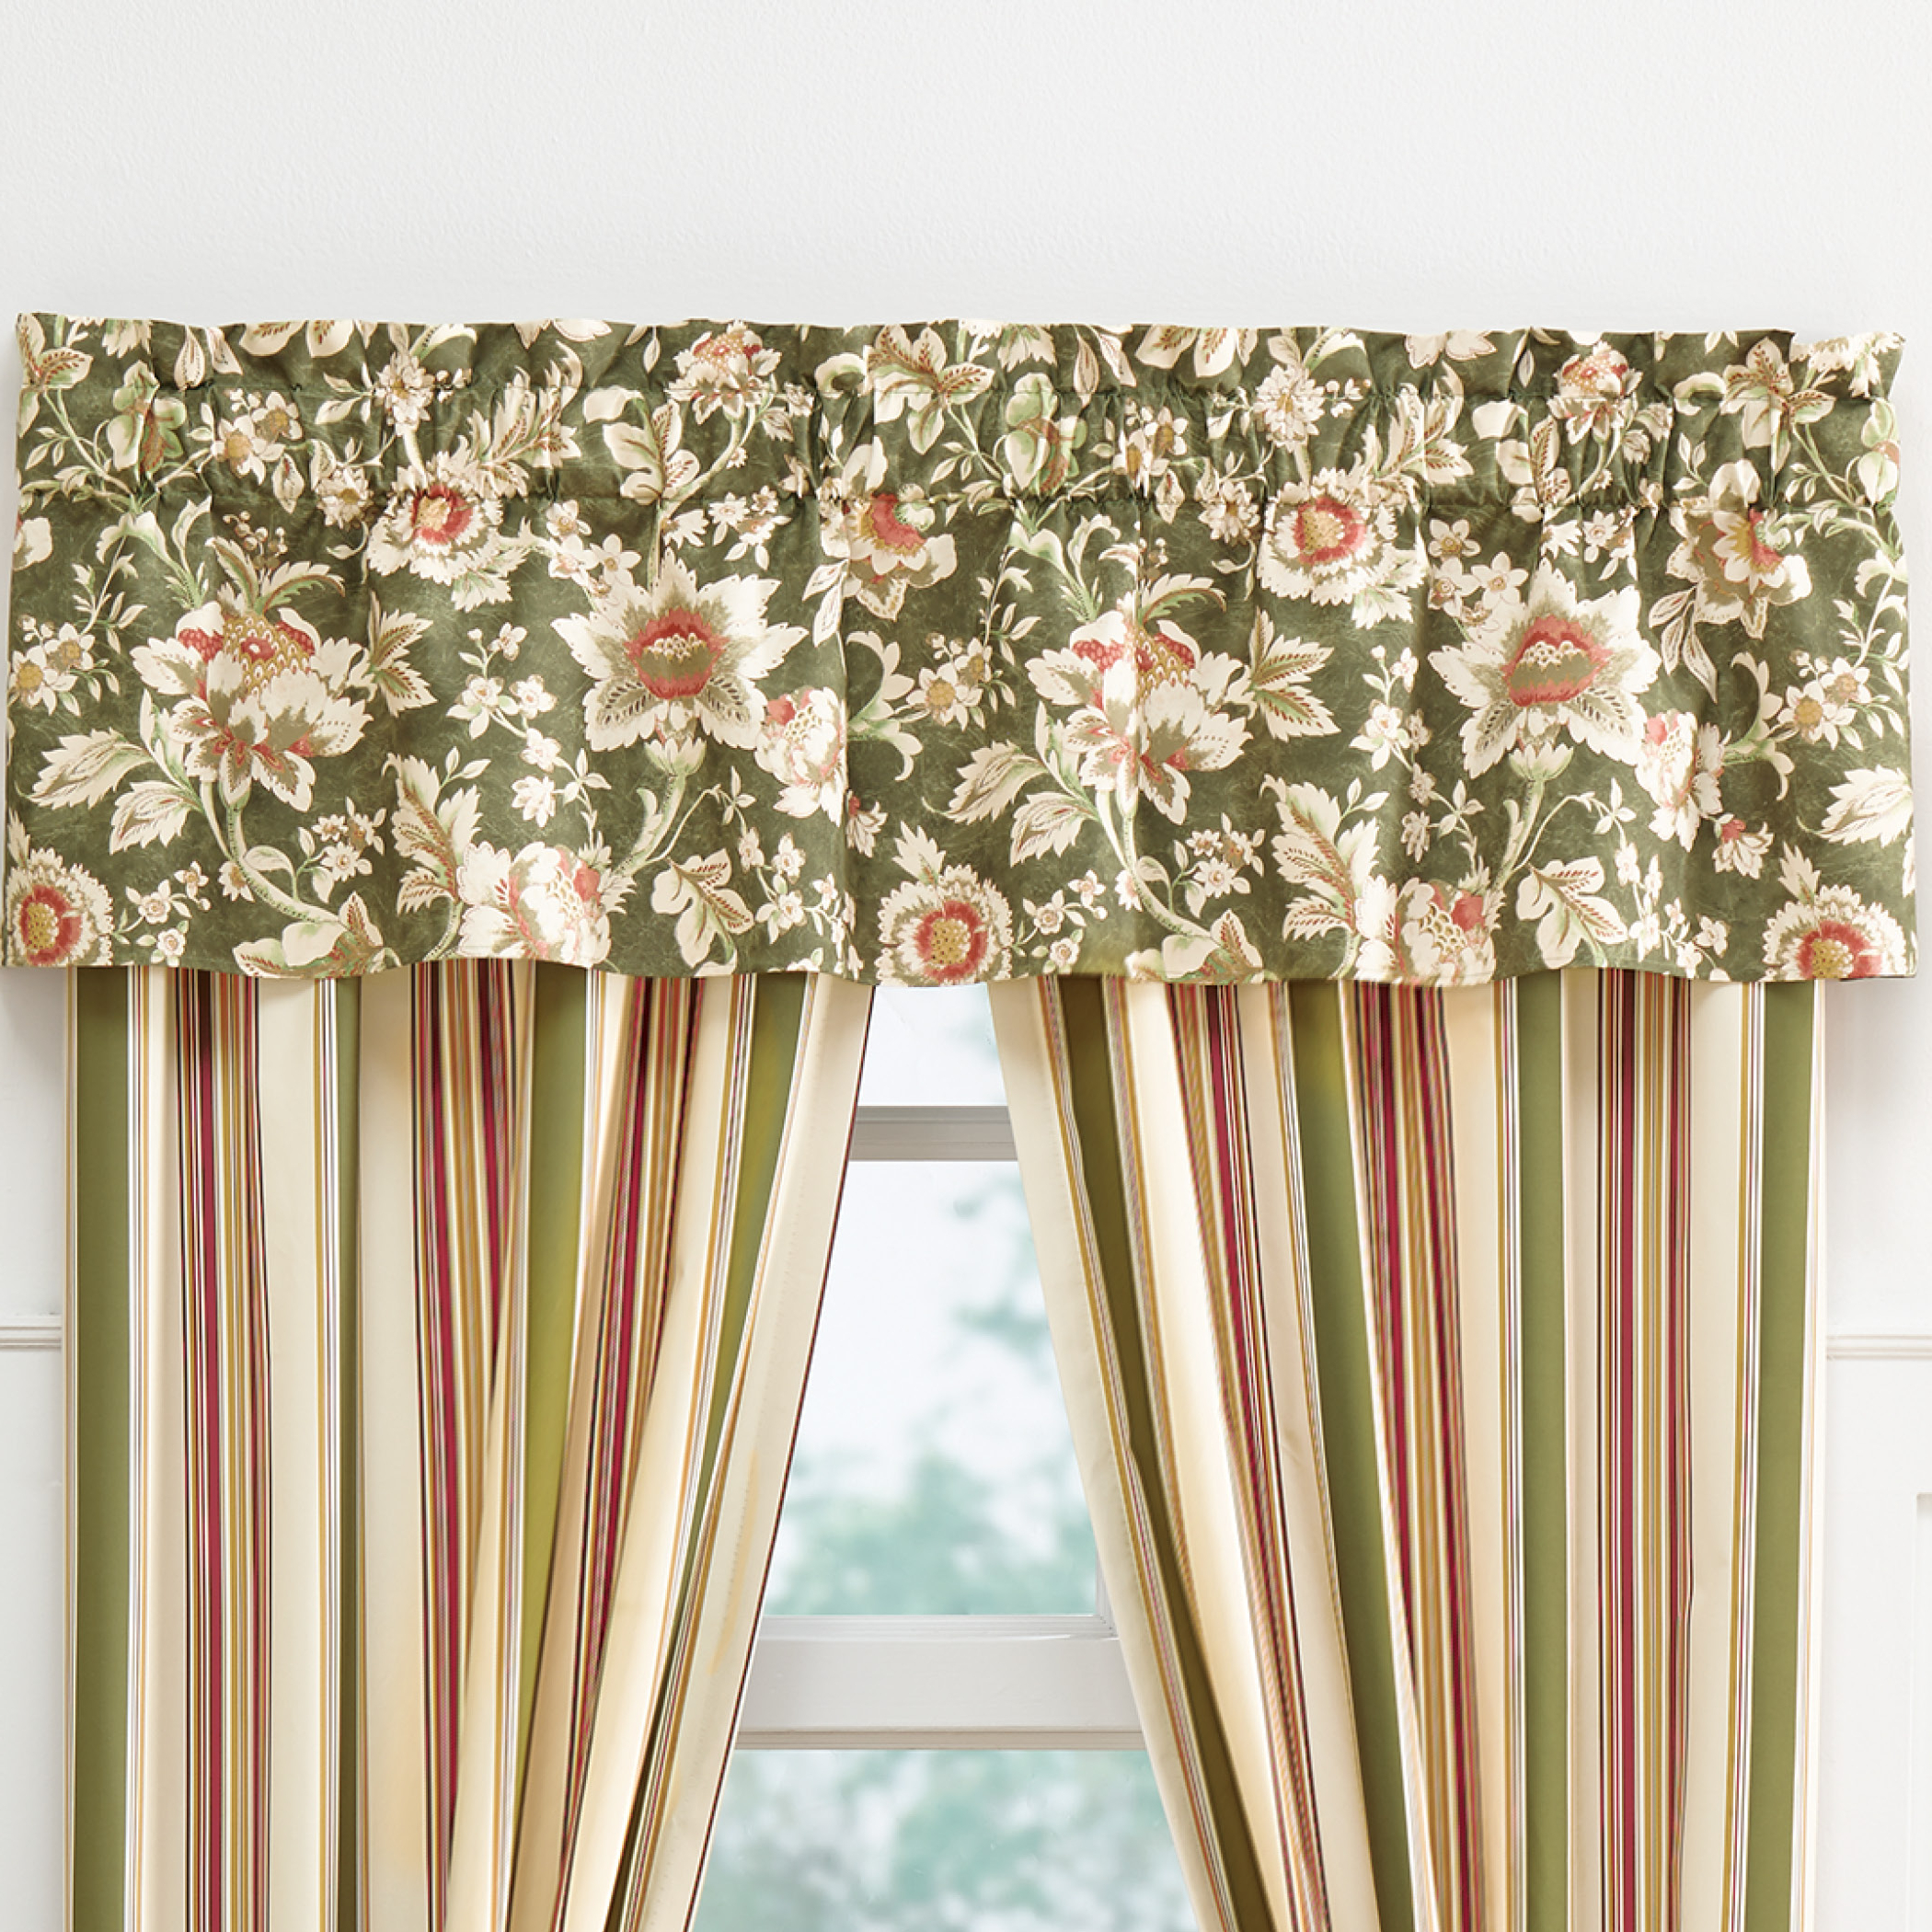 Floral Pattern Window Valances Regarding Most Up To Date Floral Concord Window Valance (View 13 of 20)